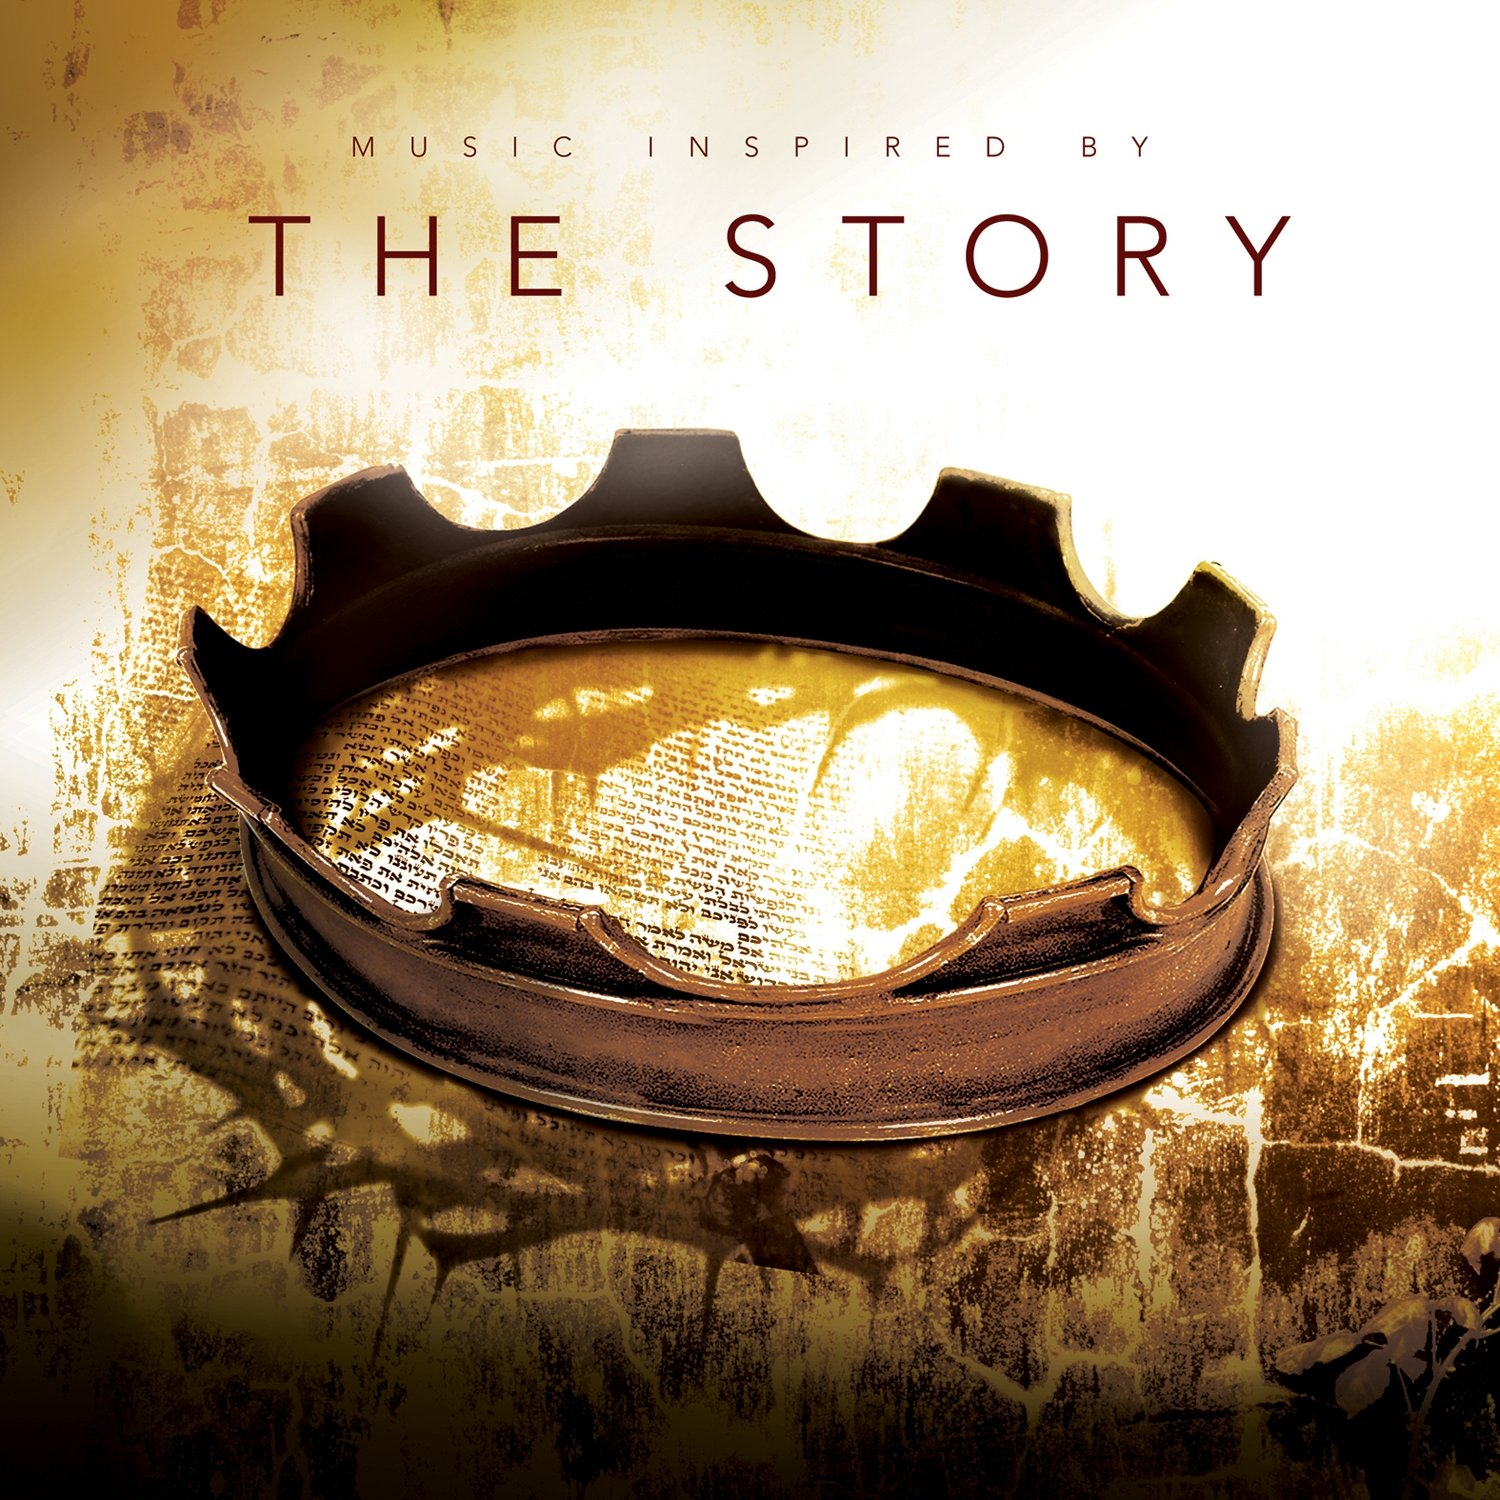 Music Inspired By The Story by Capitol Christian Distribution